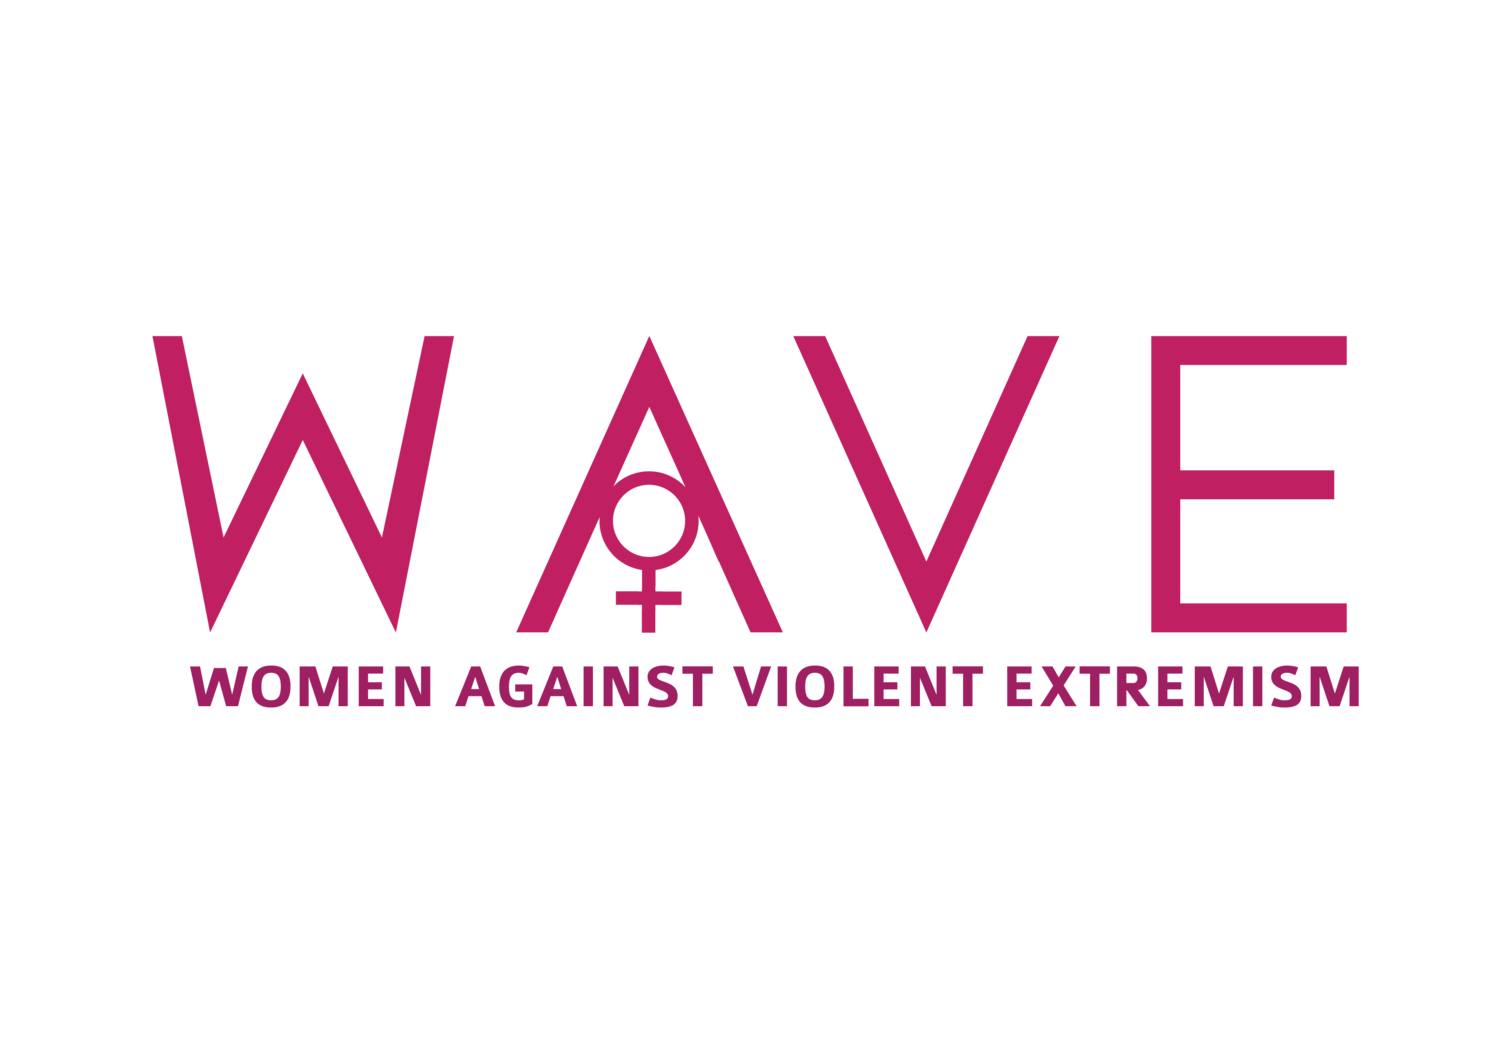 Women Against Violent Extremism